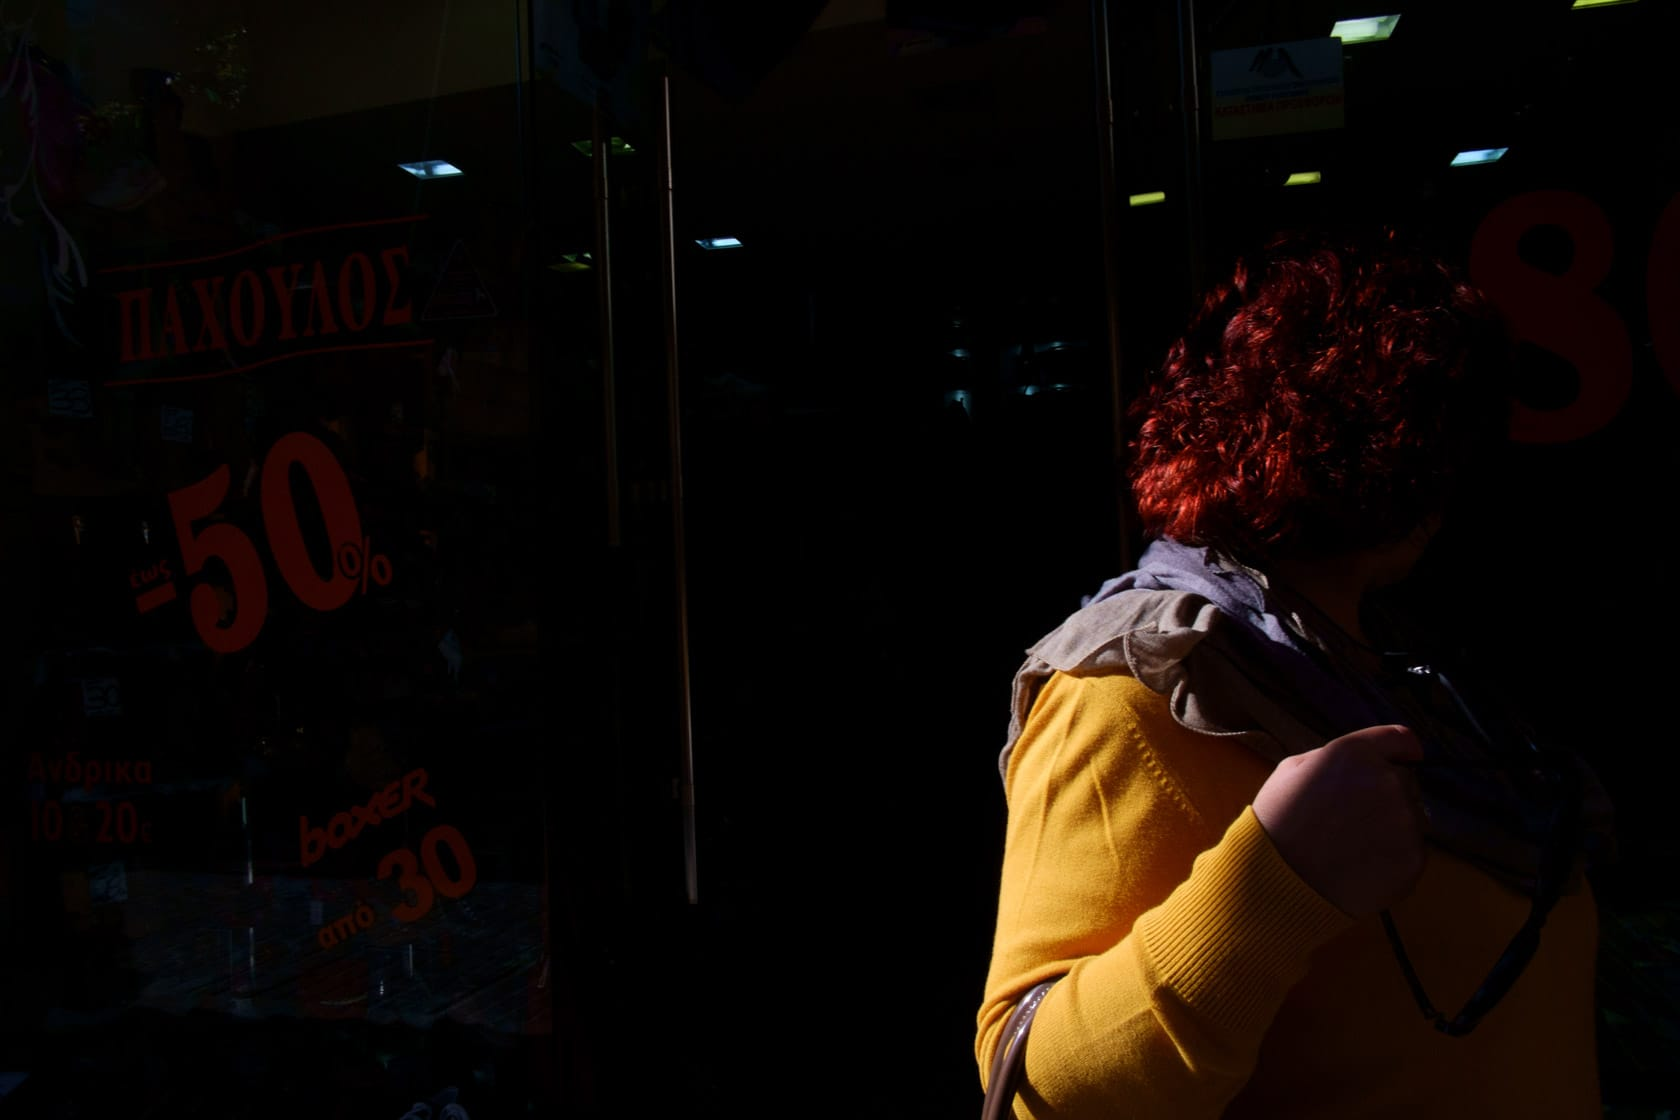 Colour in Street Photography 02